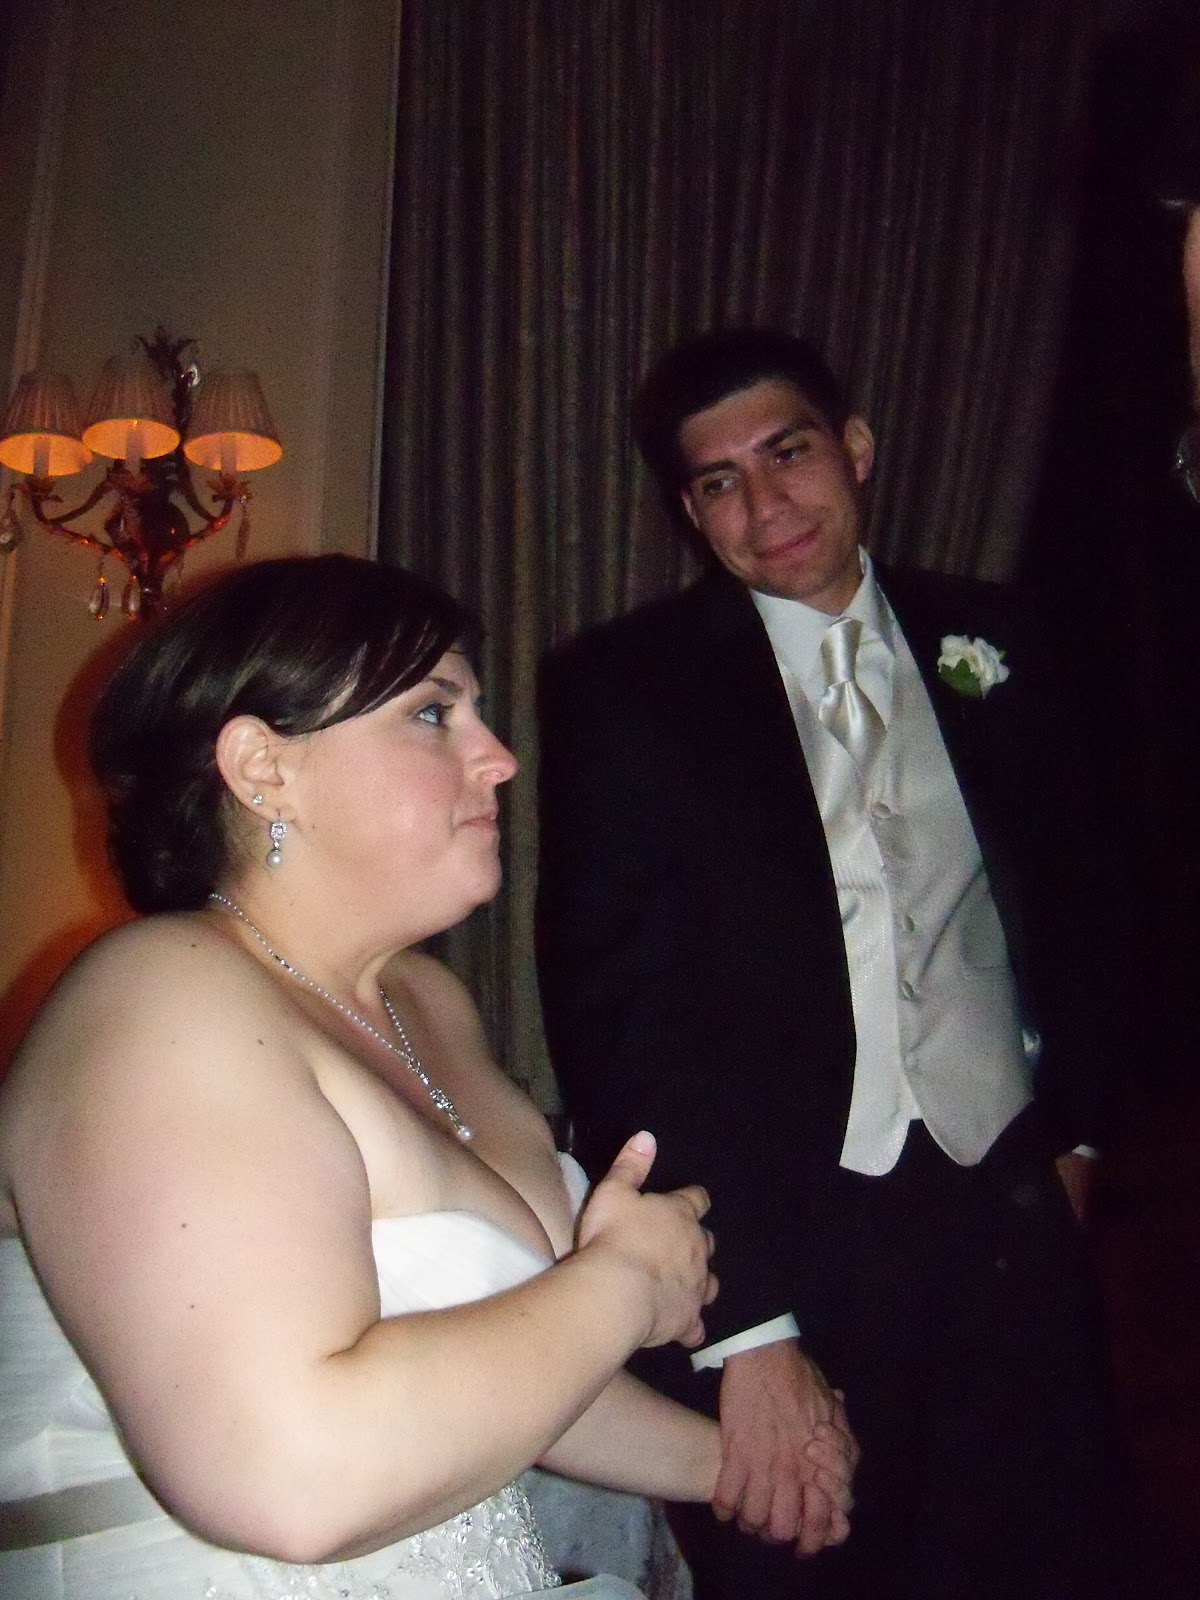 Megan Neal and Mark Suarez wedding - 100_8417.JPG